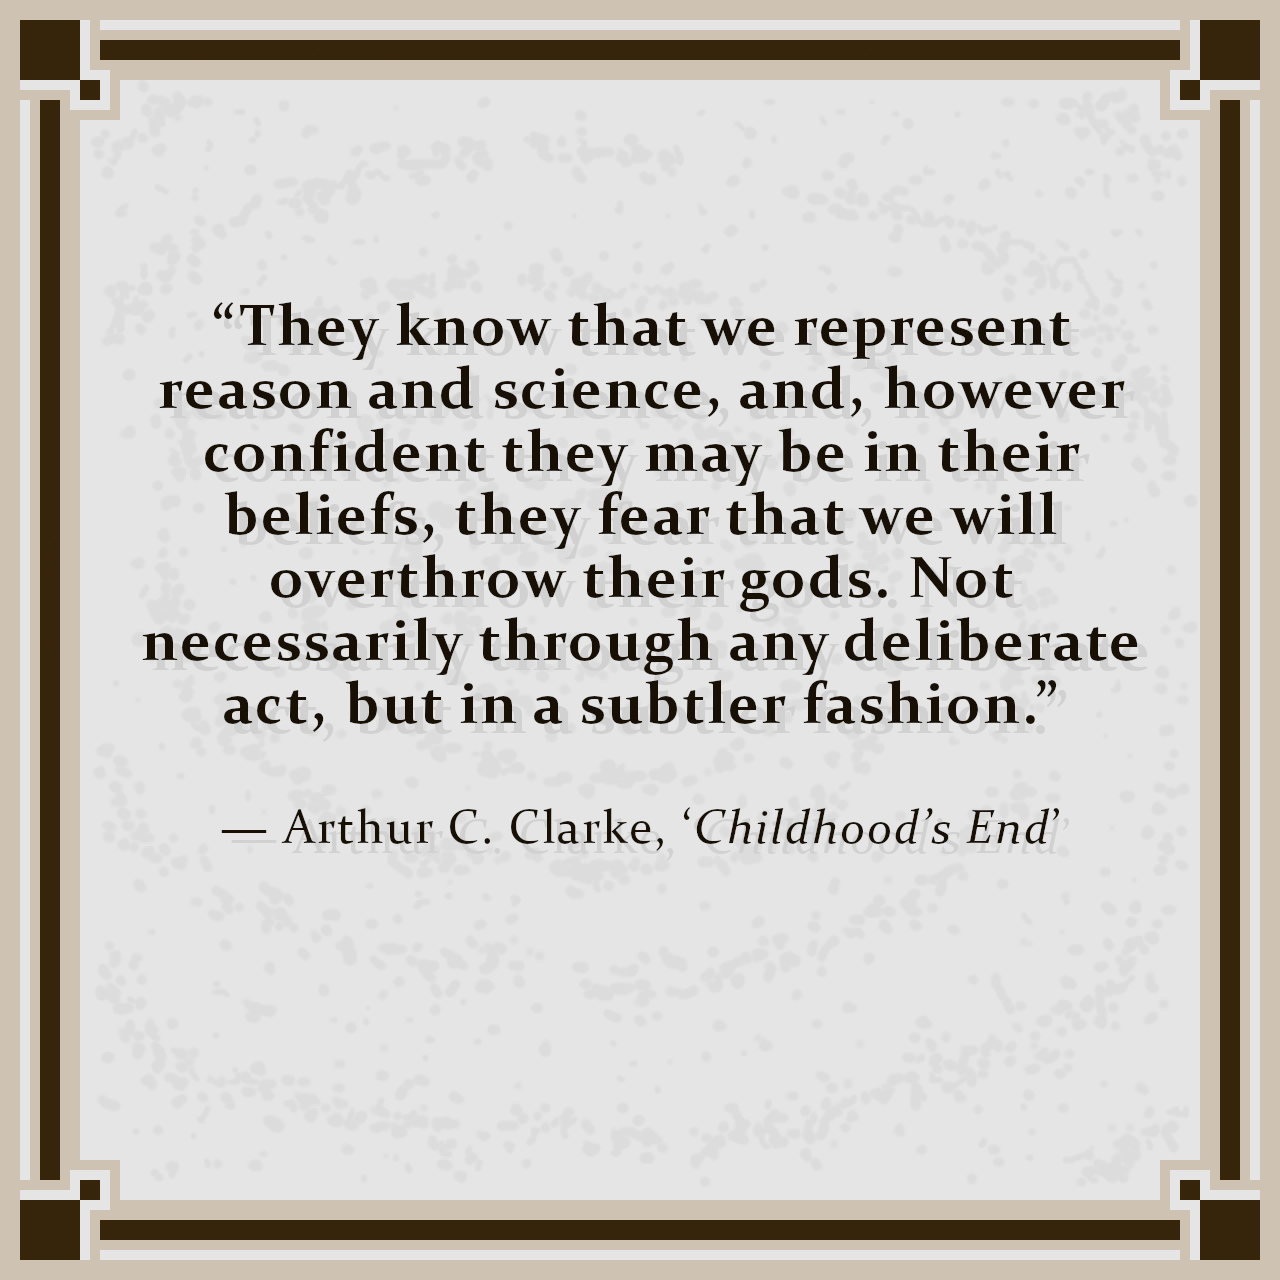 """""""They know that we represent reason and science, and, however confident they may be in their beliefs, they fear that we will overthrow their gods. Not necessarily through any deliberate act, but in a subtler fashion."""" — Arthur C. Clarke, 'Childhood's End'"""